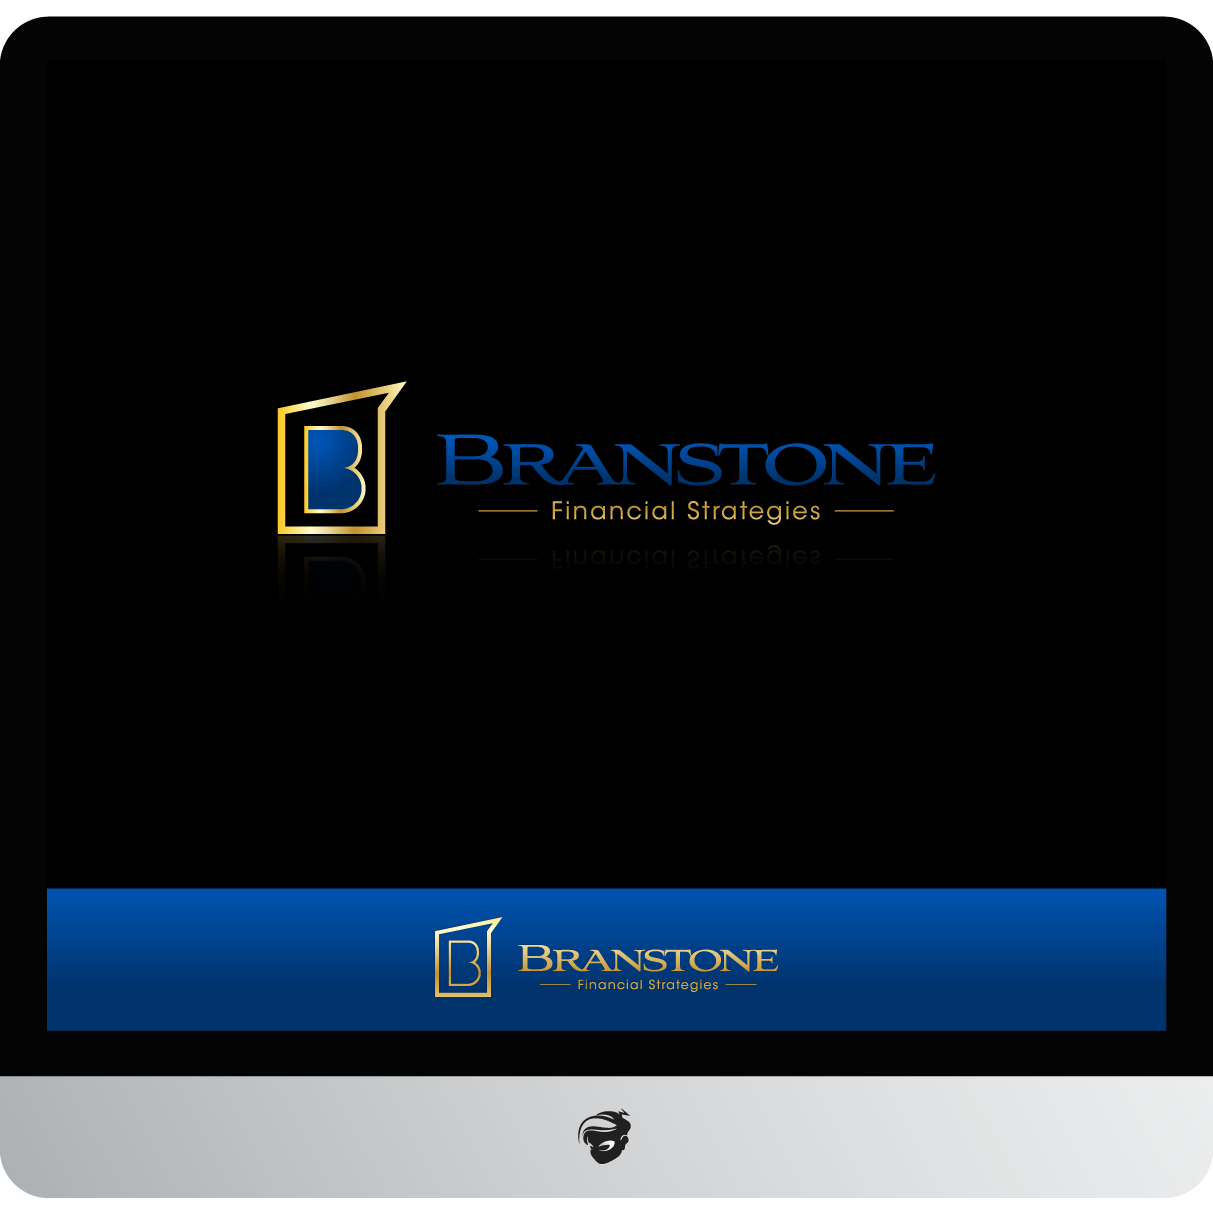 Logo Design by zesthar - Entry No. 228 in the Logo Design Contest Inspiring Logo Design for Branstone Financial Strategies.